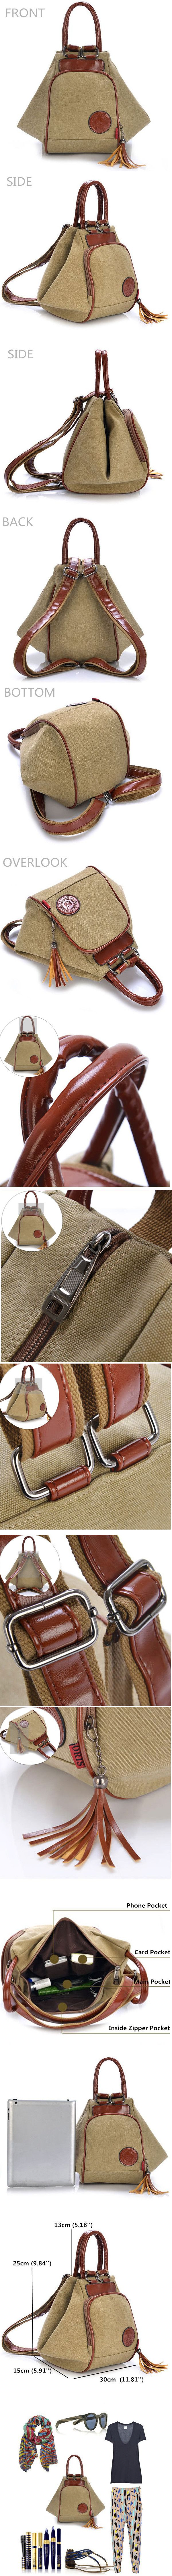 Women Men Canvas Tassel Backpack Casual Diagonal Handbags Multi Functional Shoulder Bags